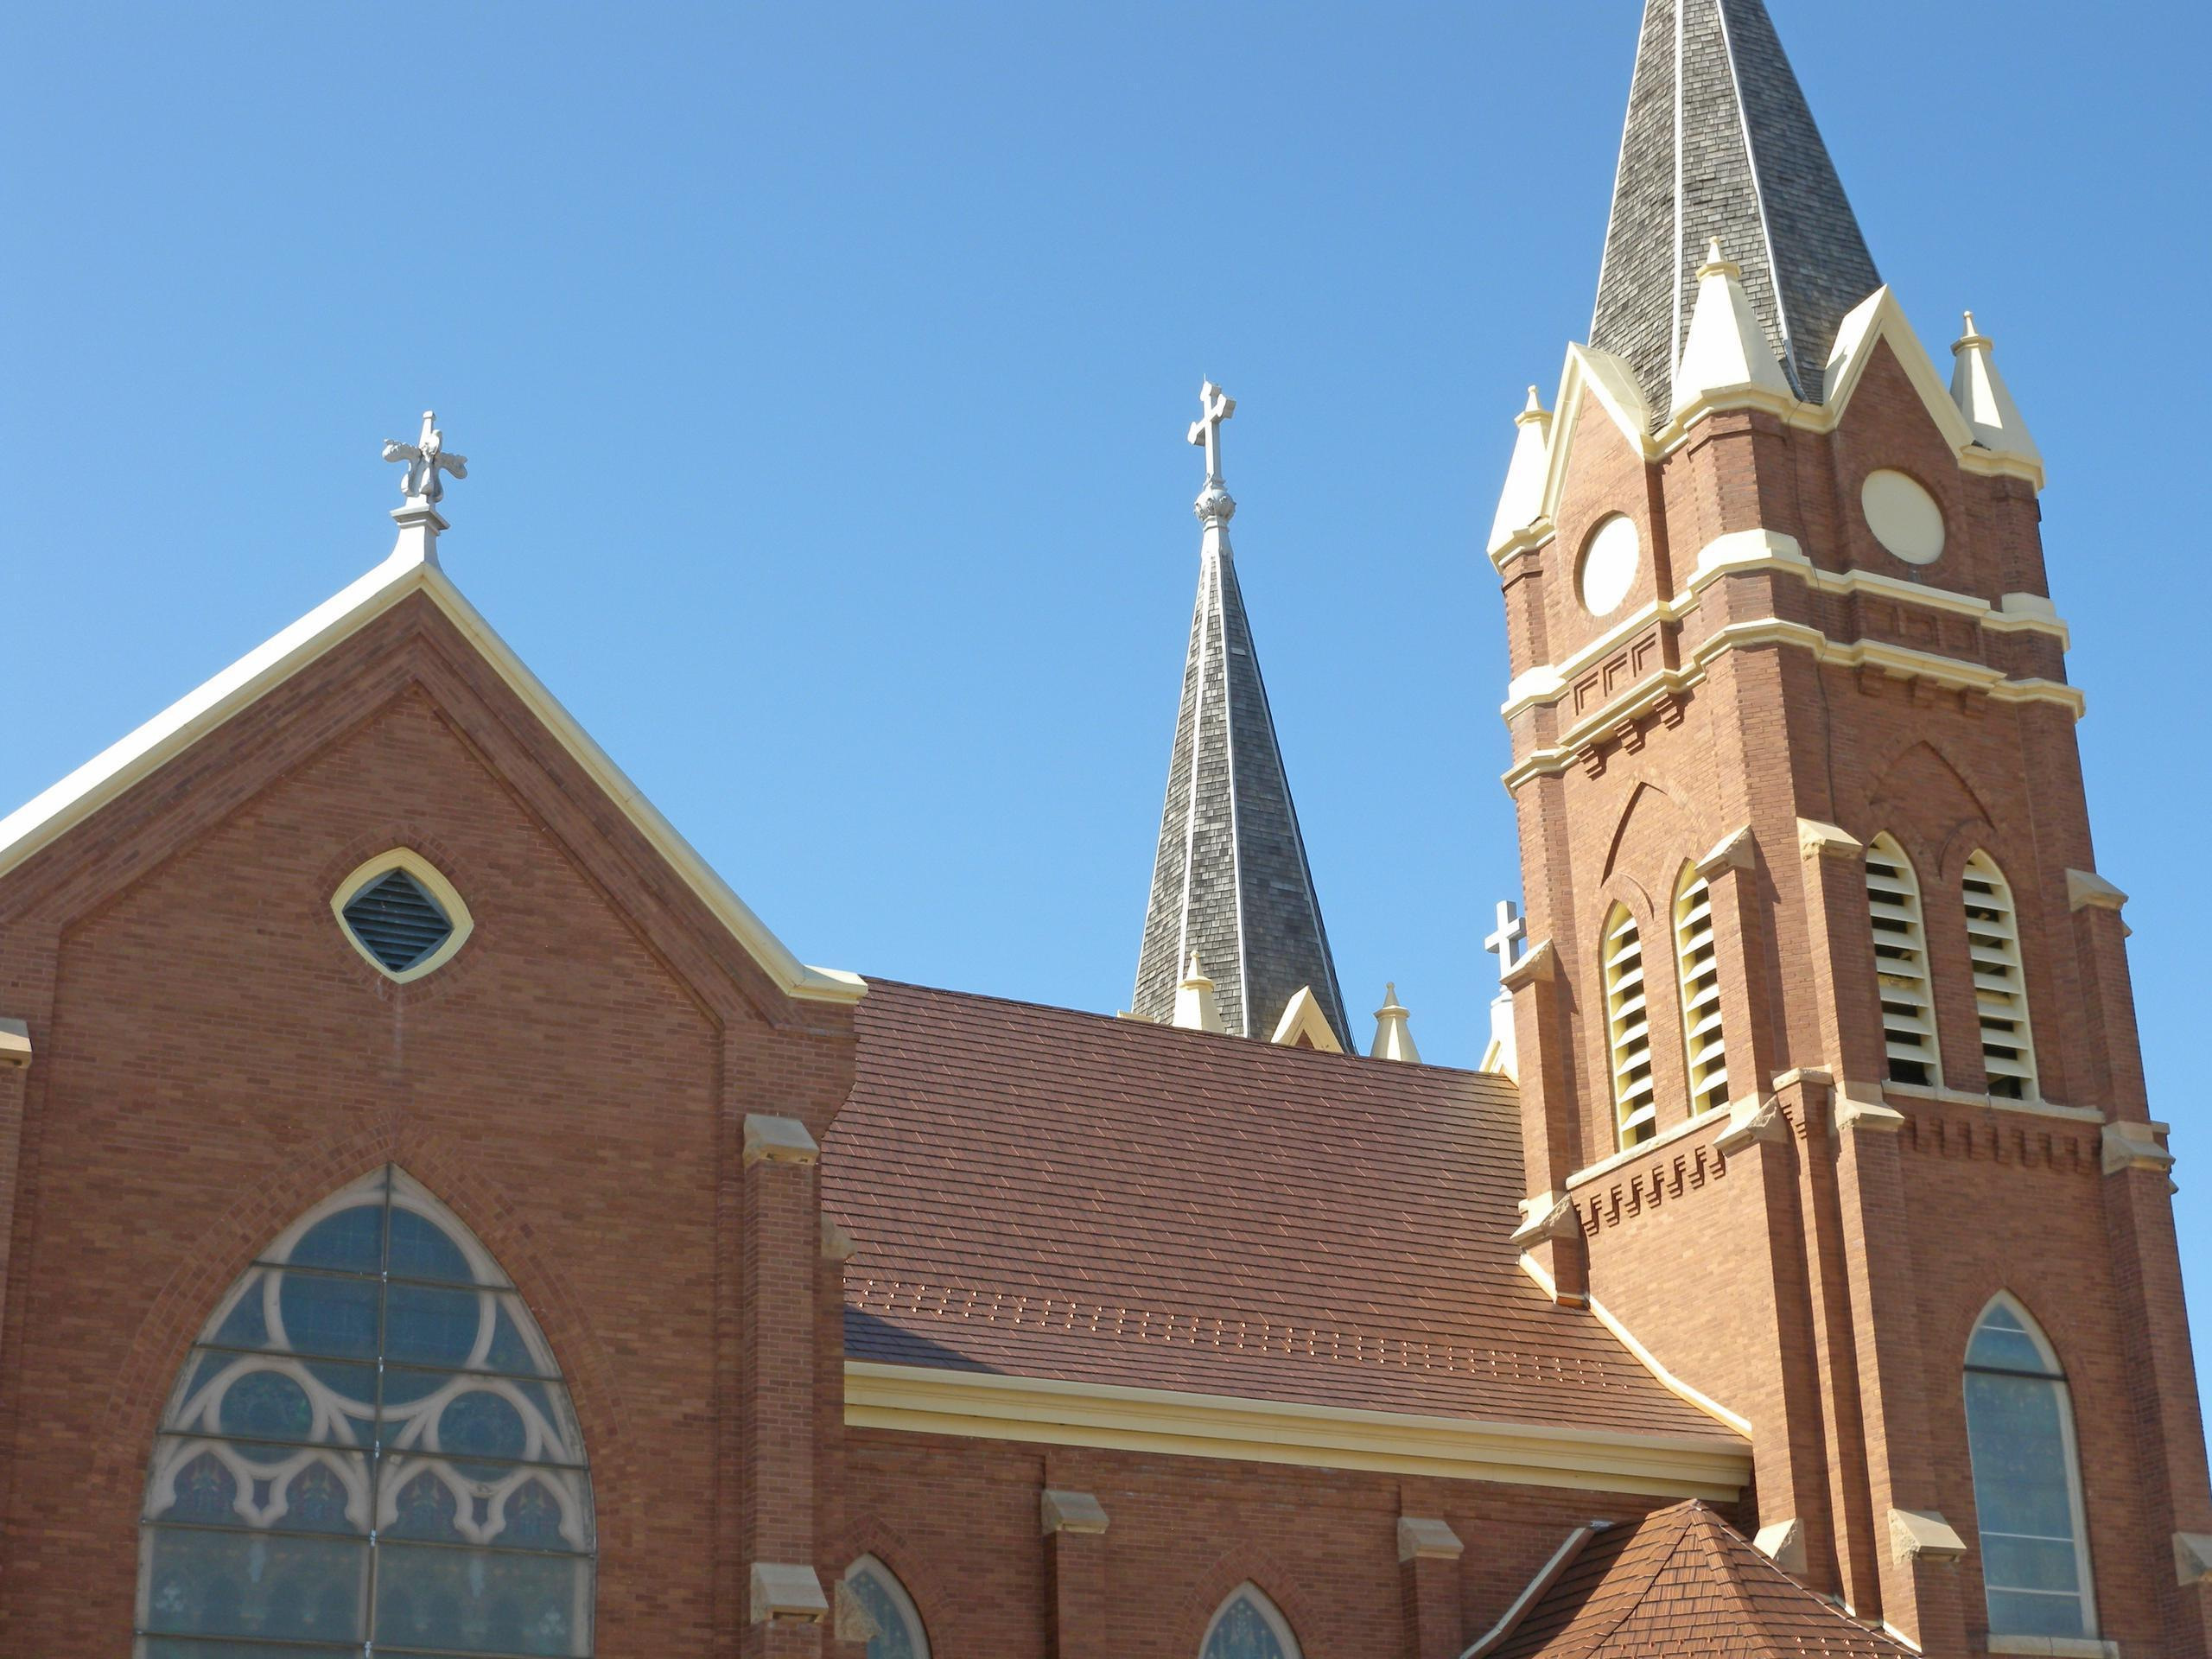 To keep with the original architectural detail, St. Phillips Catholic Church in Hankinson, ND, installed Generations Copper HD Roofing from EDCO because of its natural look that will last a lifetime.